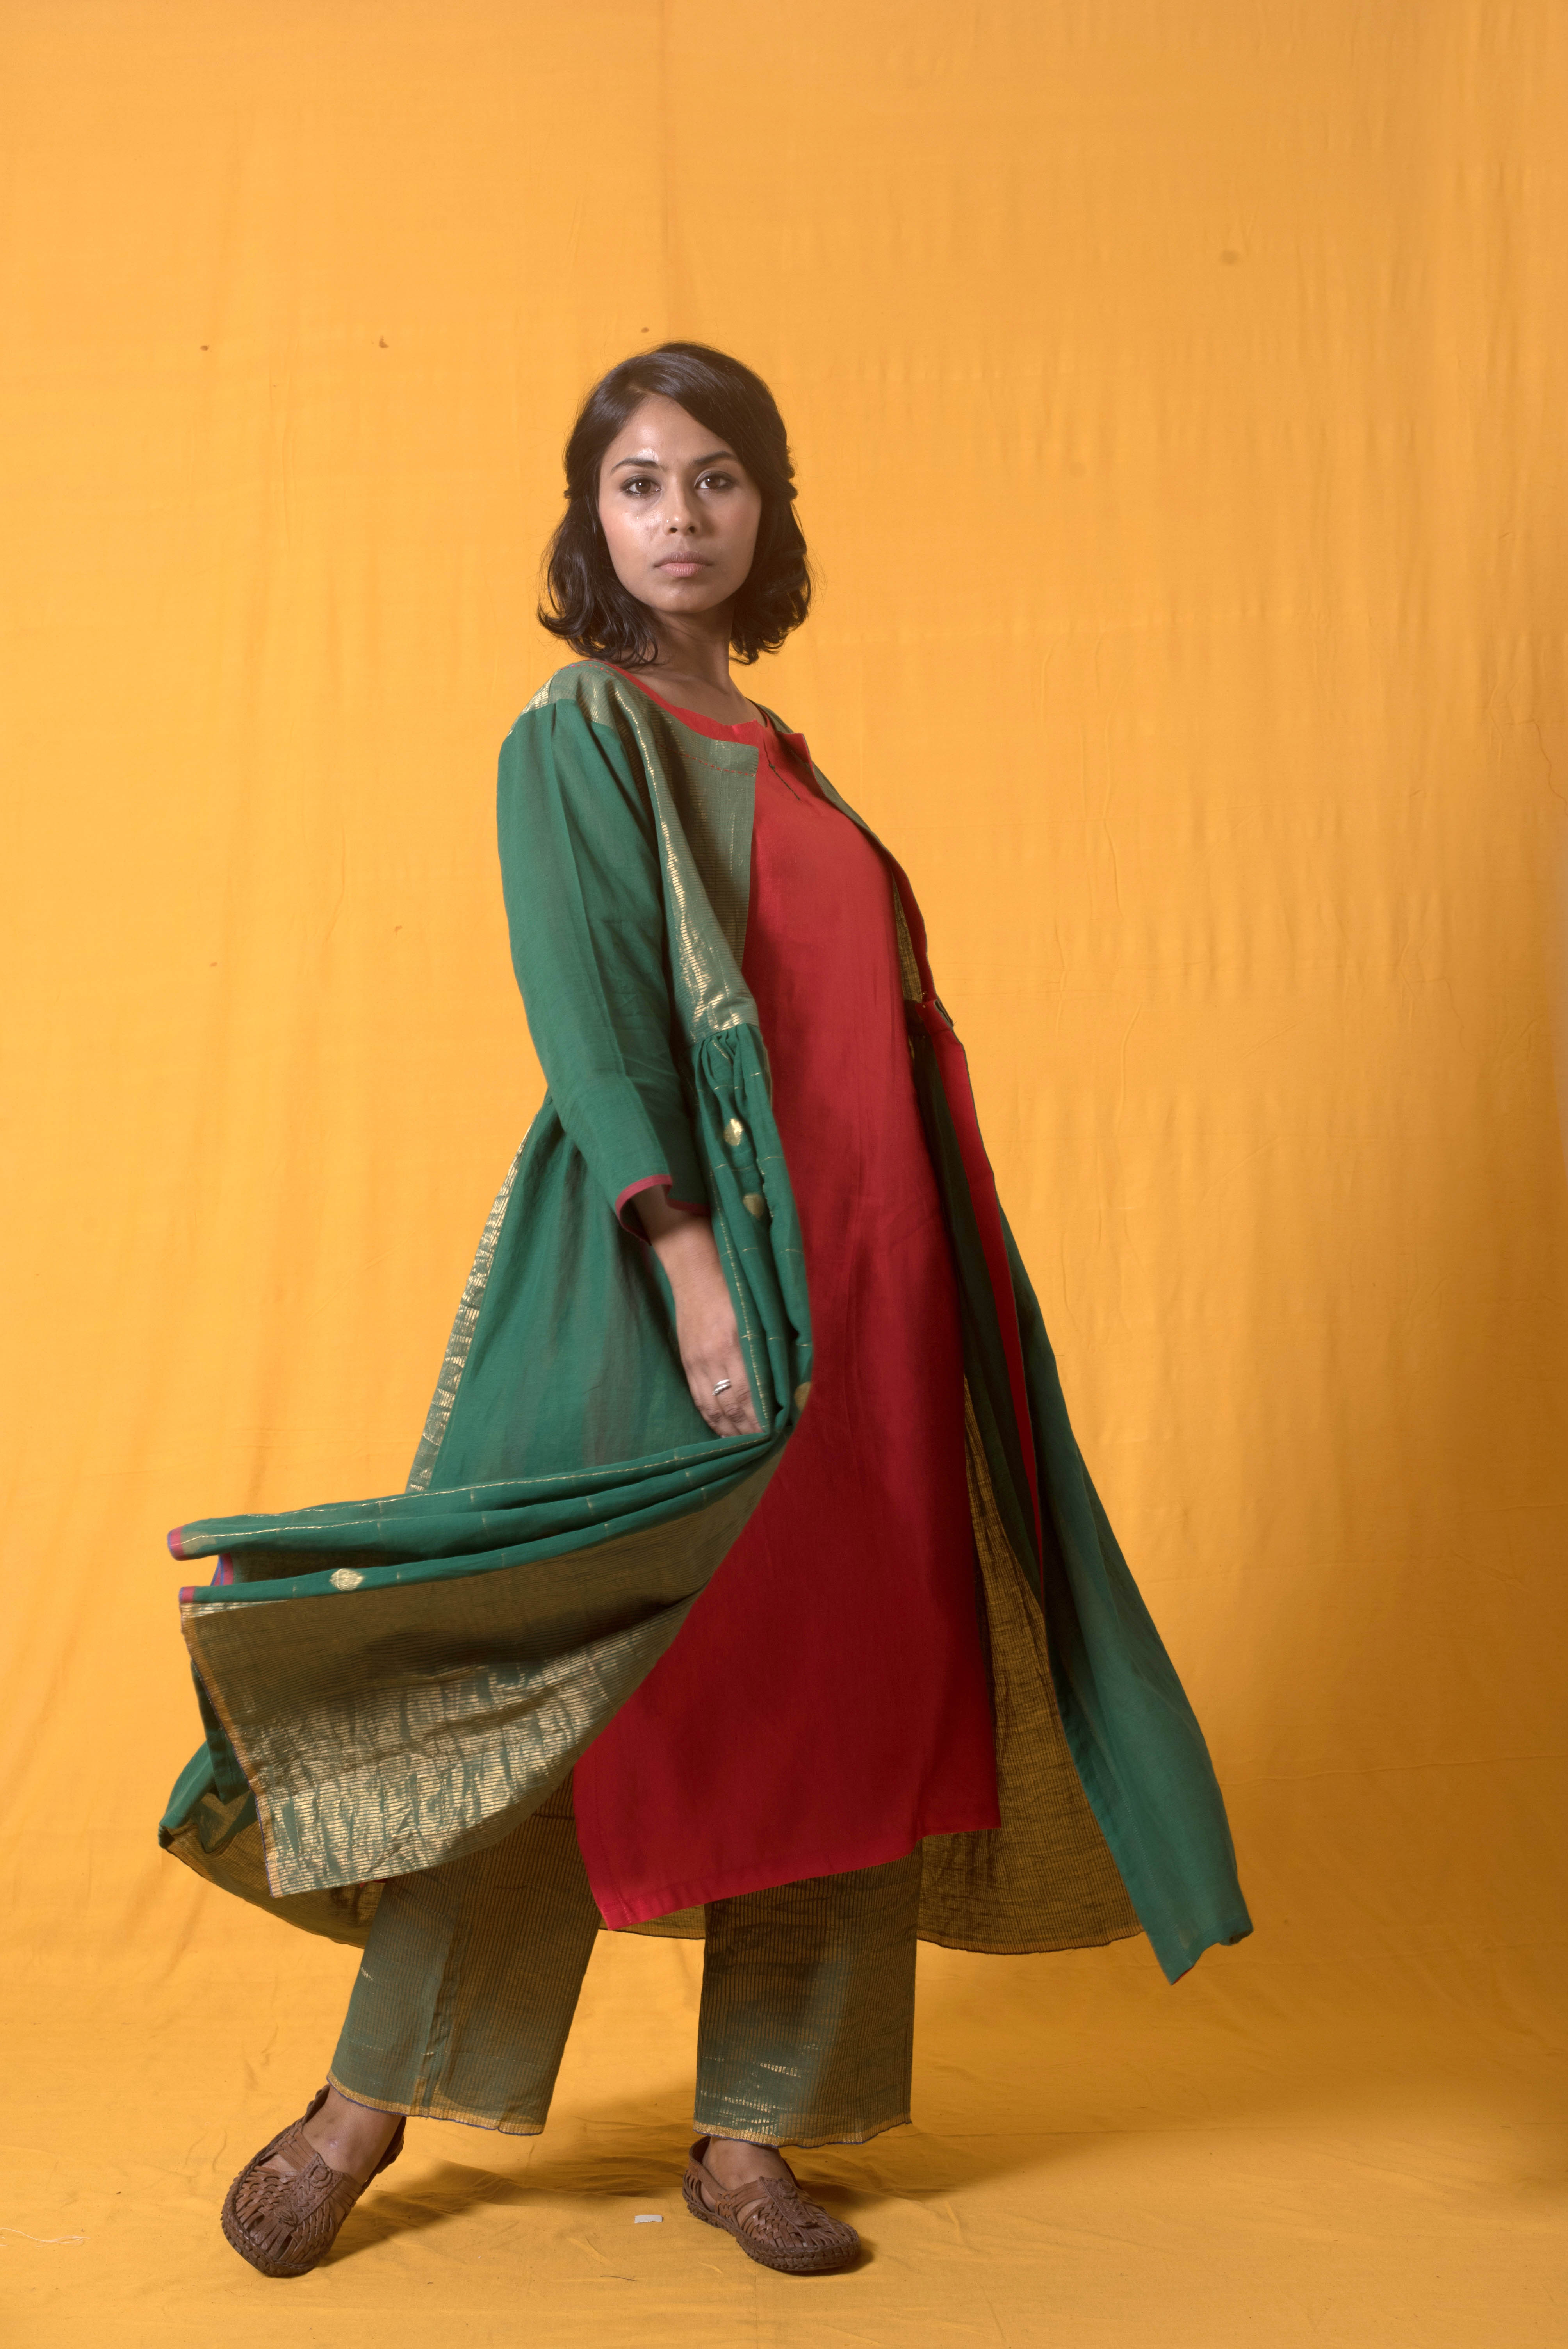 ciceroni- fashion - emerald green - ekaya banaras - silai studio - paromita banerjee - united colour of benetton - ucb - festive fashion - wedding lehenga - banarasi - jamdani - checked coat - jewel tones - lehenga choli - shades of green - fashion and lifestyle portal - November fashion - olive green saree - jamdani saree - jamdani kurta set